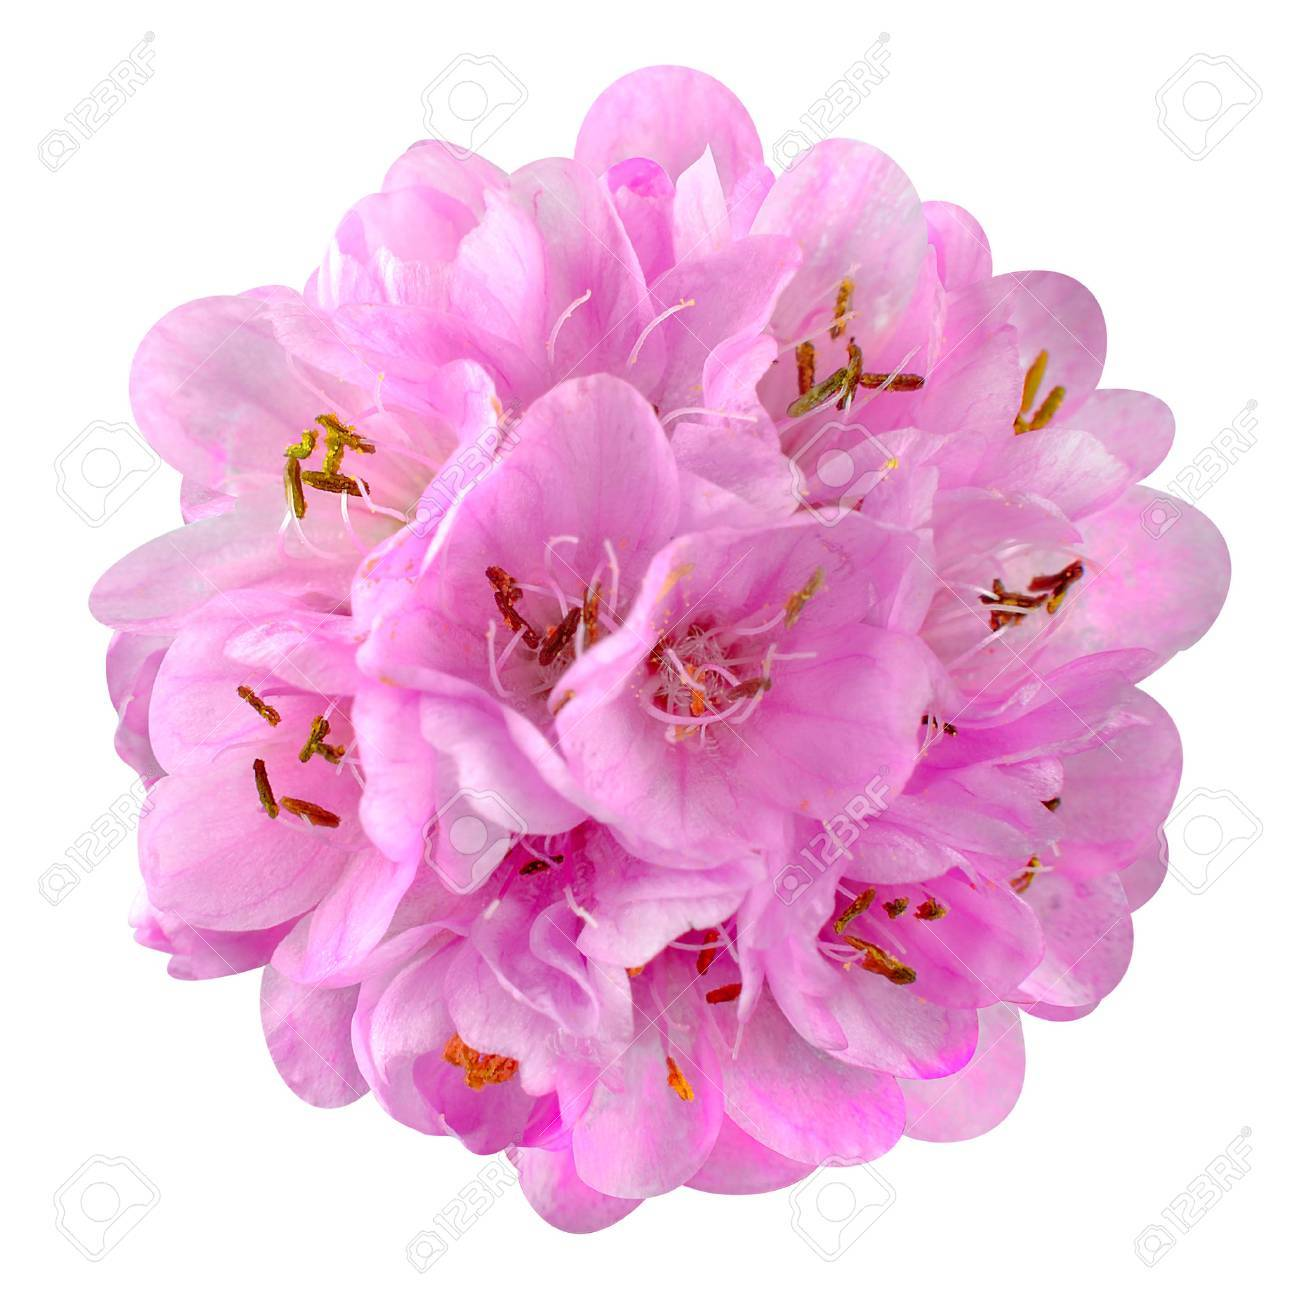 Small Pink Flower Ball Dombeya Isolated On White Background Stock